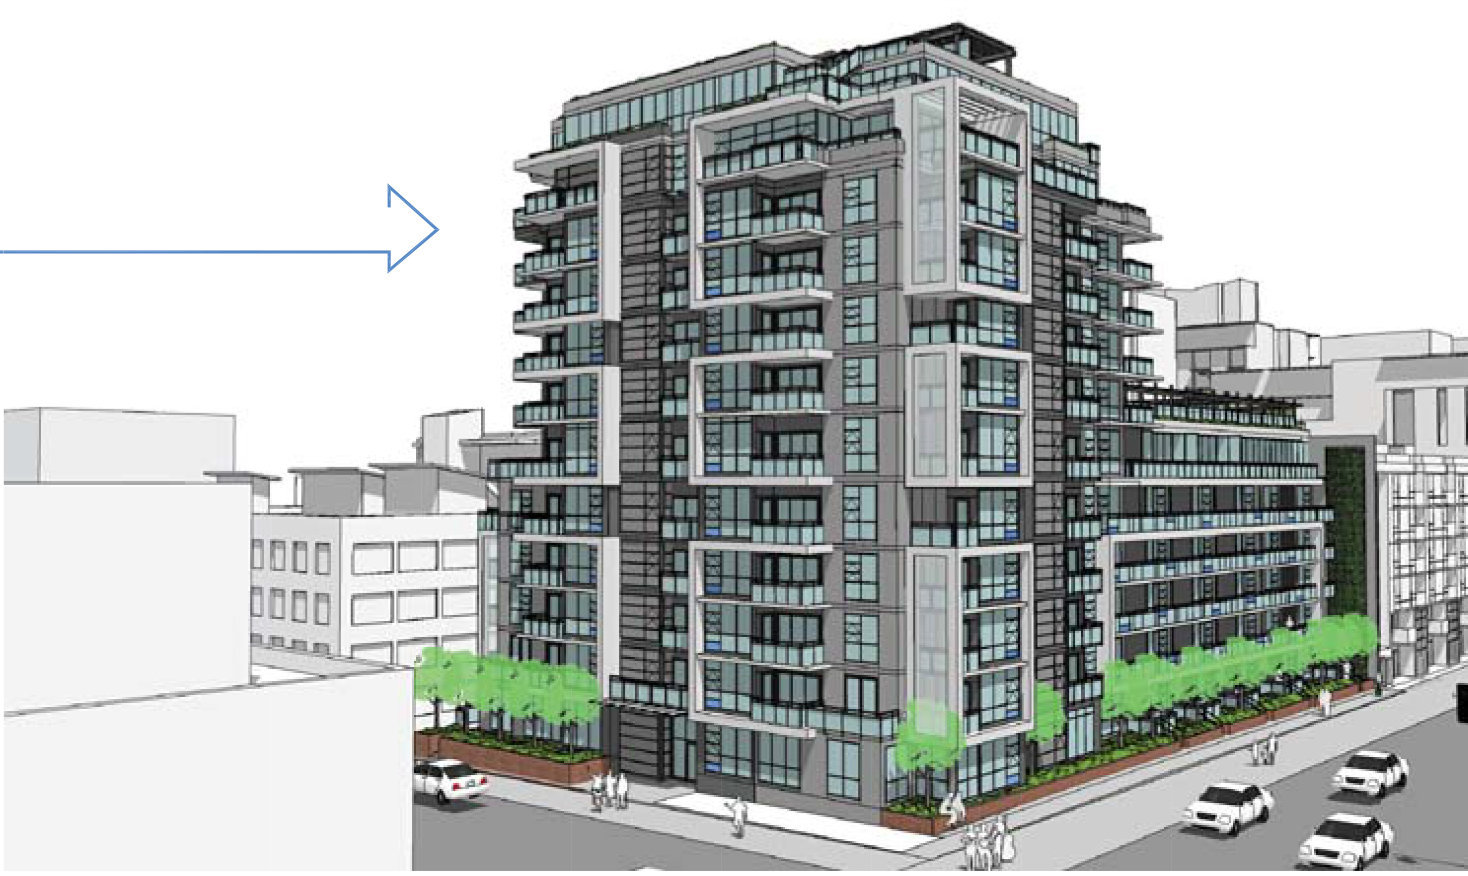 371 W 2nd Avenue Rendering!